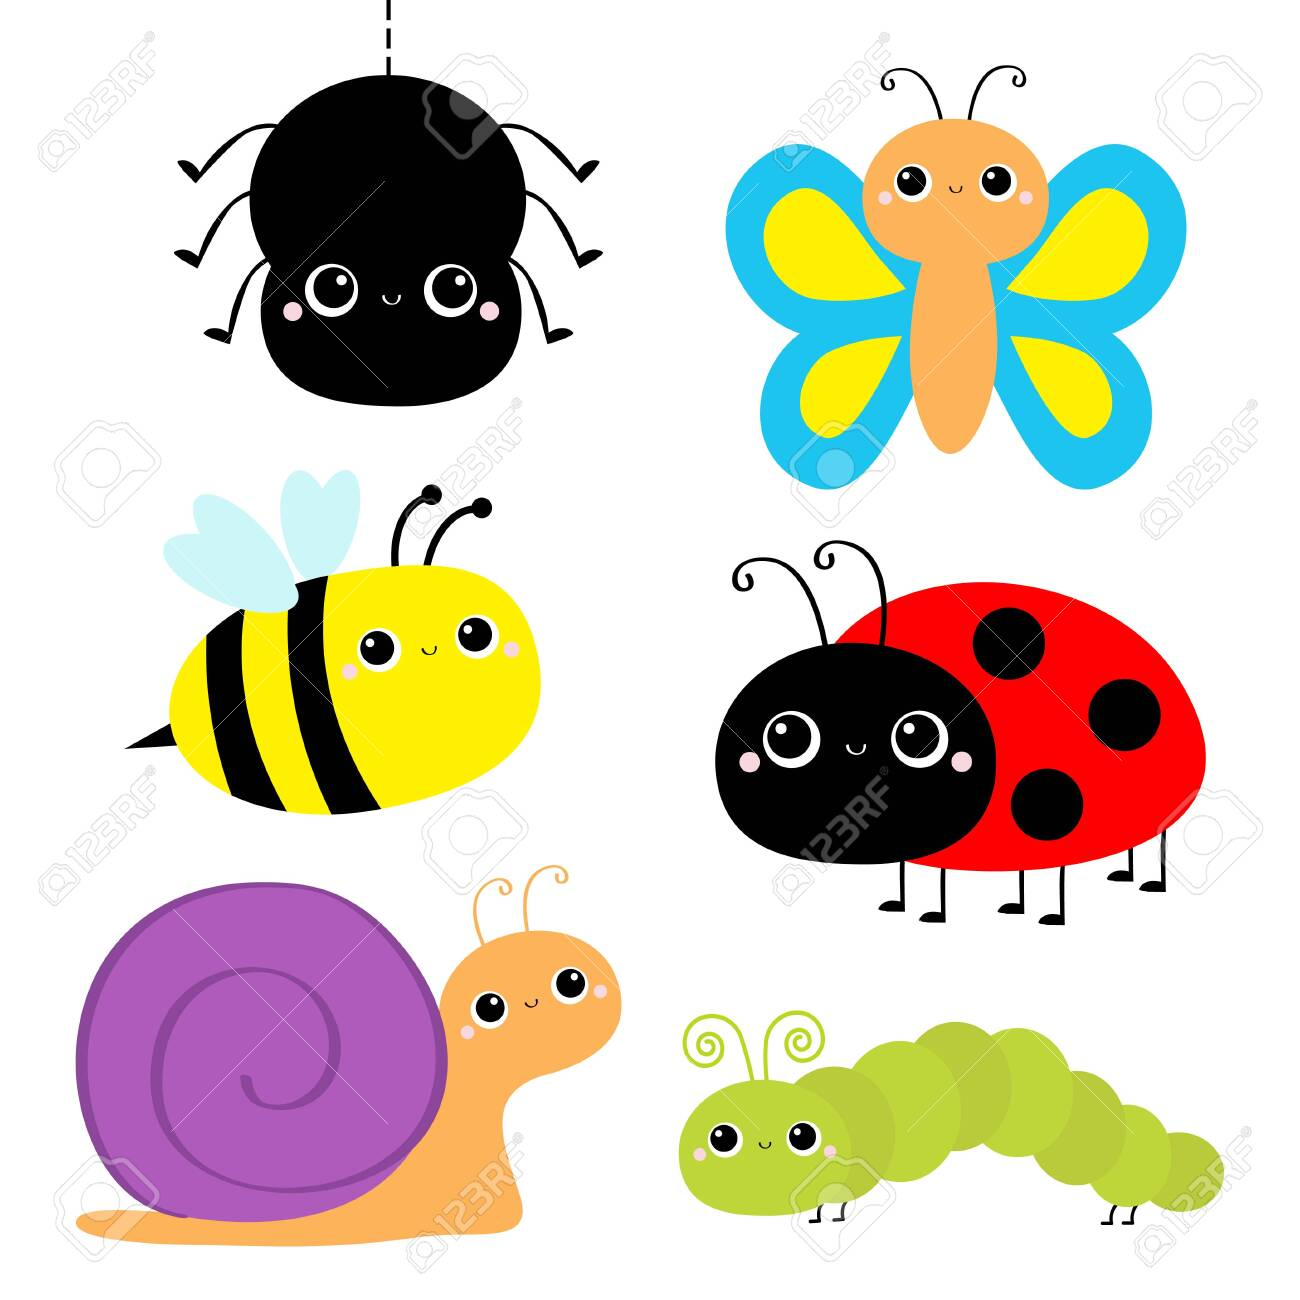 Insect Set Ladybug Ladybird Green Caterpillar Butterfly Spider Royalty Free Cliparts Vectors And Stock Illustration Image 138717446